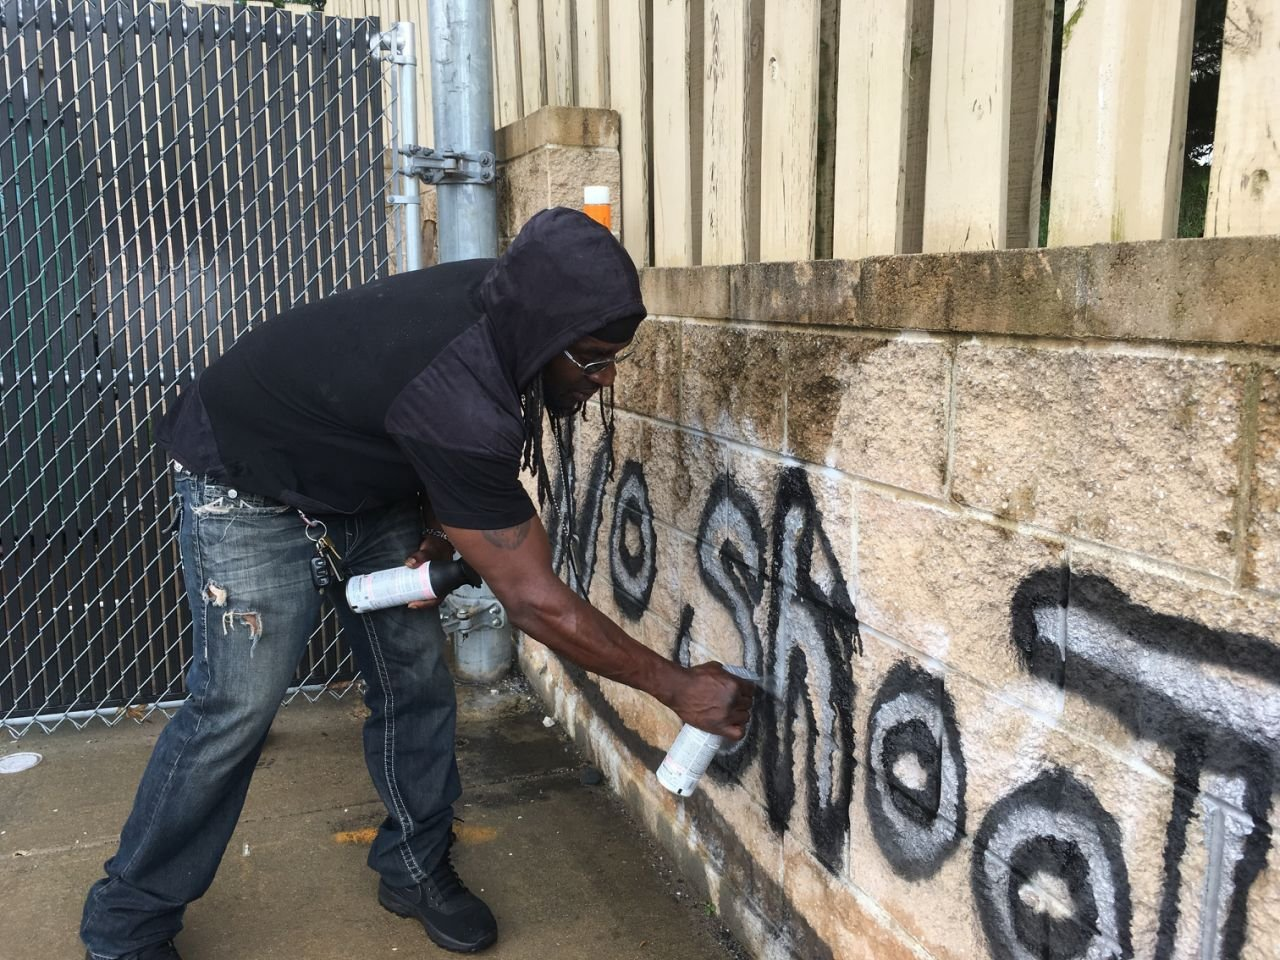 """In this Wednesday, Aug. 2, 2017, photo Tyree Colion spray paints the words """"No Shoot Zone"""" on a brick wall behind a convenience store, in a spot near where a 13-year-old girl was fatally shot in Baltimore County, Md. (AP Photo/Juliet Linderman)"""